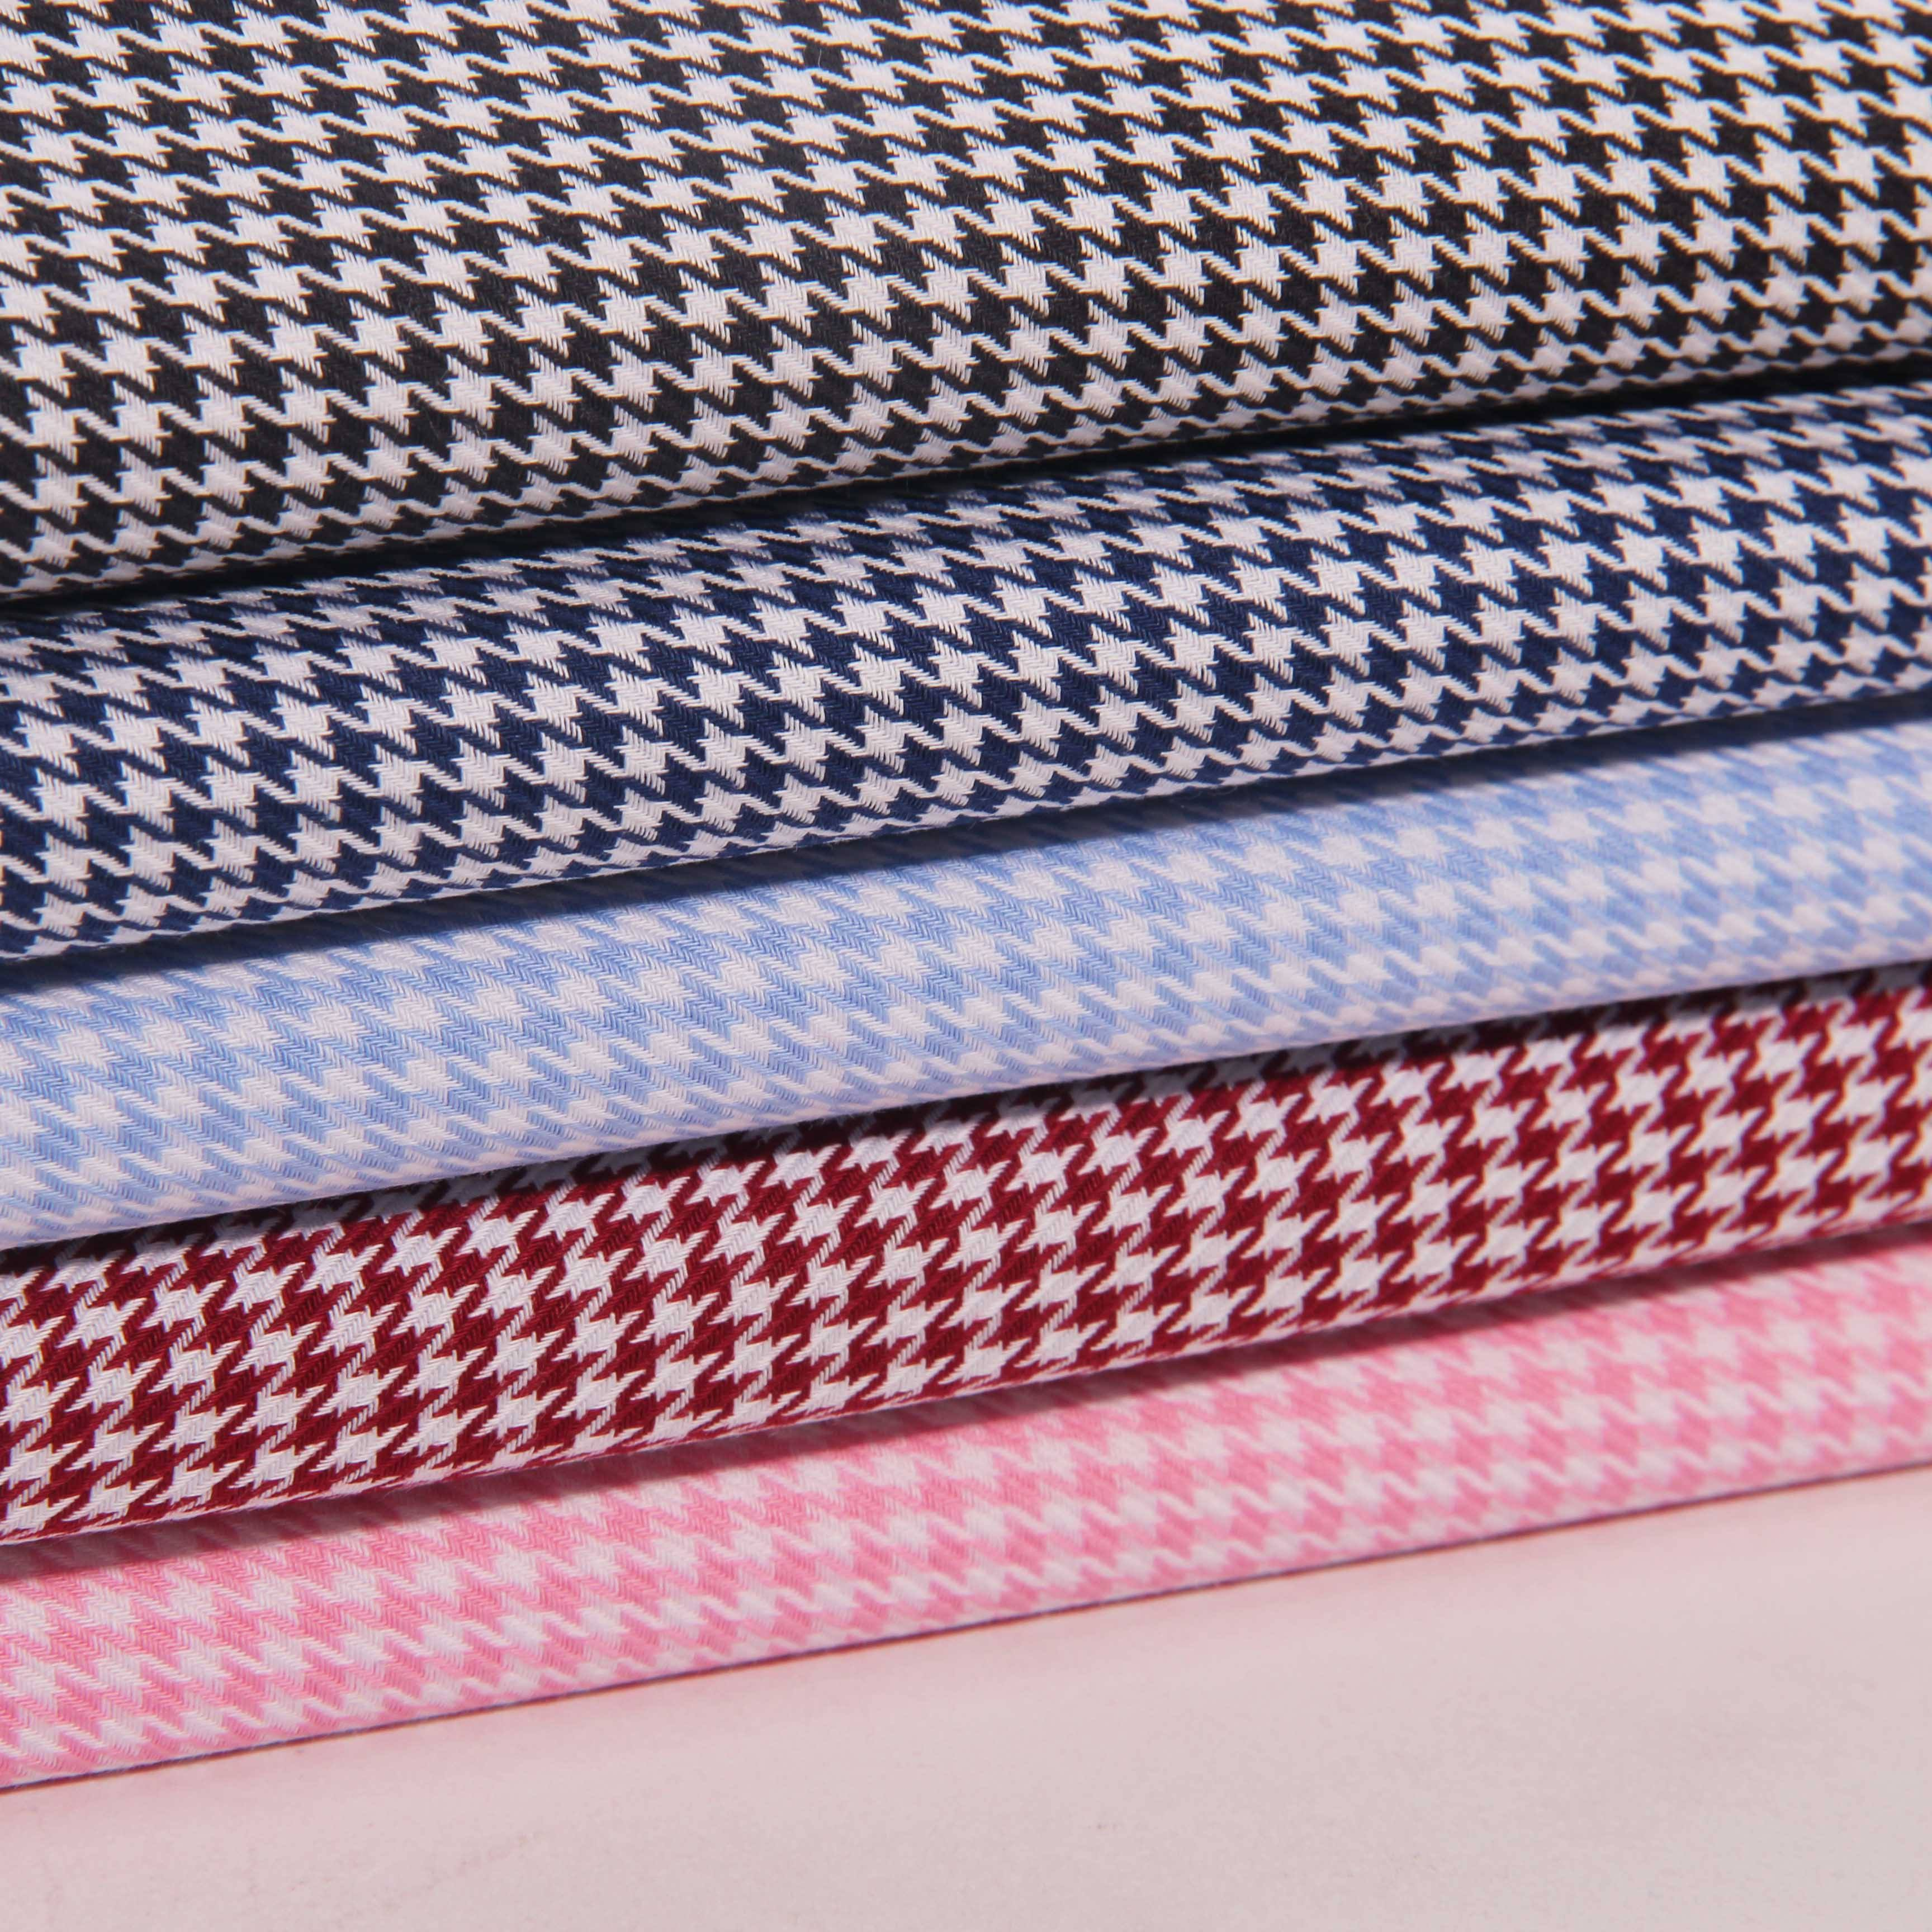 classic houndstooth 100 cotton shirts men and women Egyptian long-staple cotton yarn dyed fabric